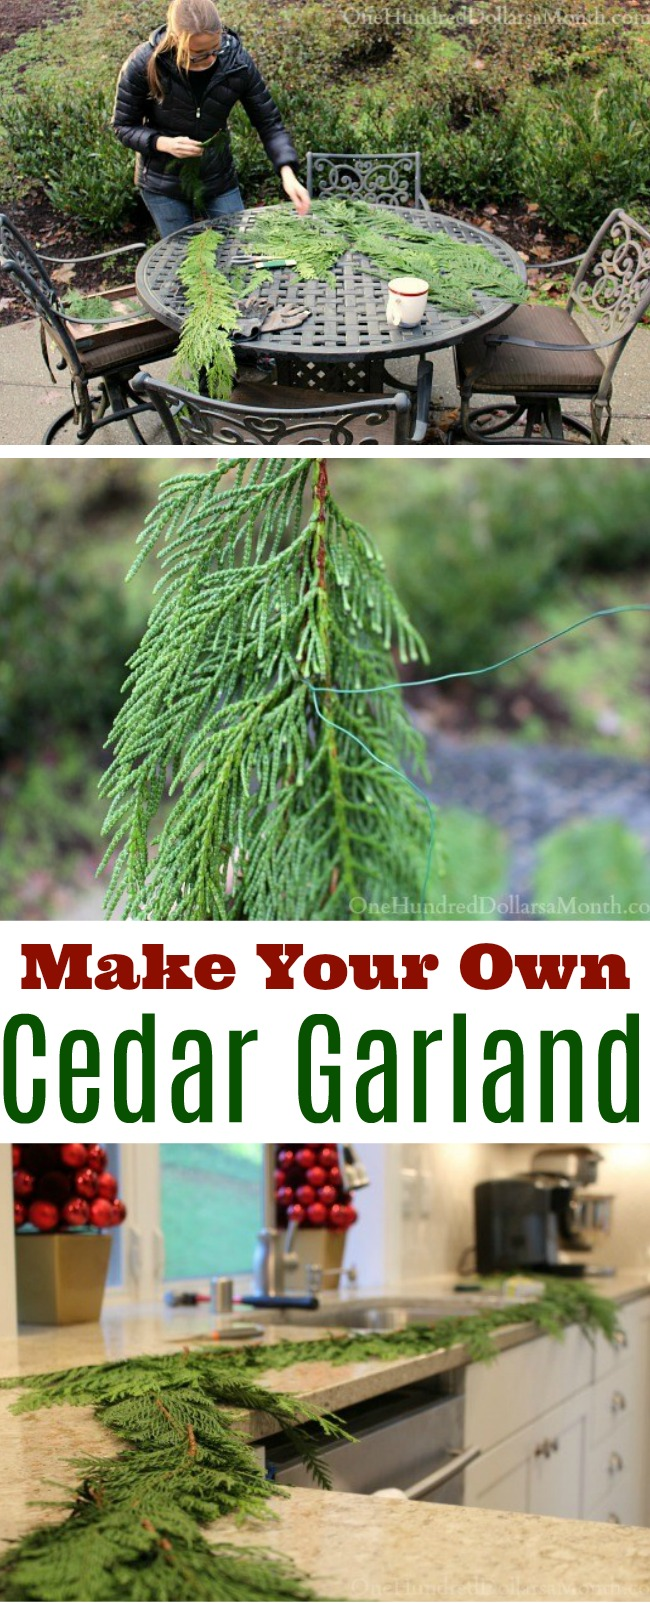 Homemade Holidays – DIY Cedar Garland